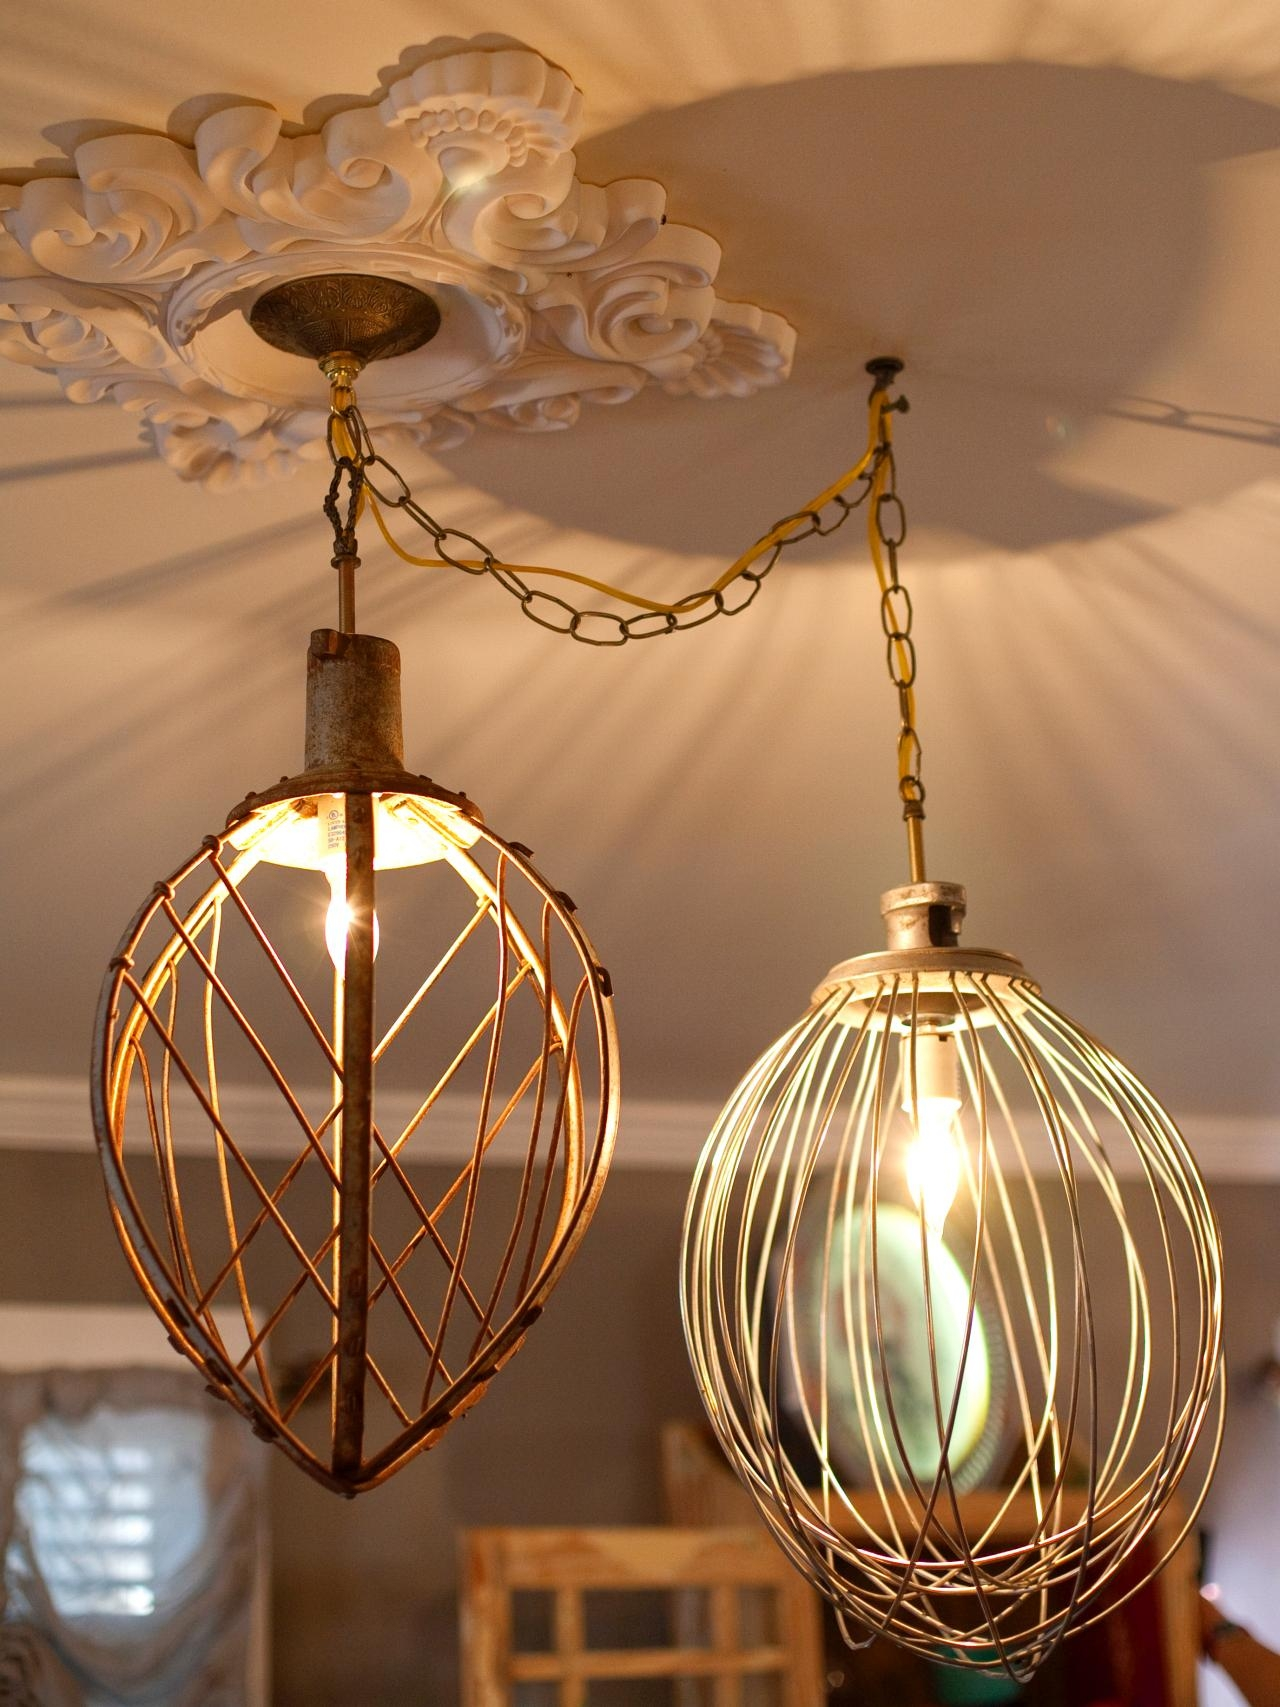 Rustic Chandeliers Rustic Chandeliers Vintage Crystal Chandelier Intended For Small Gypsy Chandeliers (Image 19 of 25)